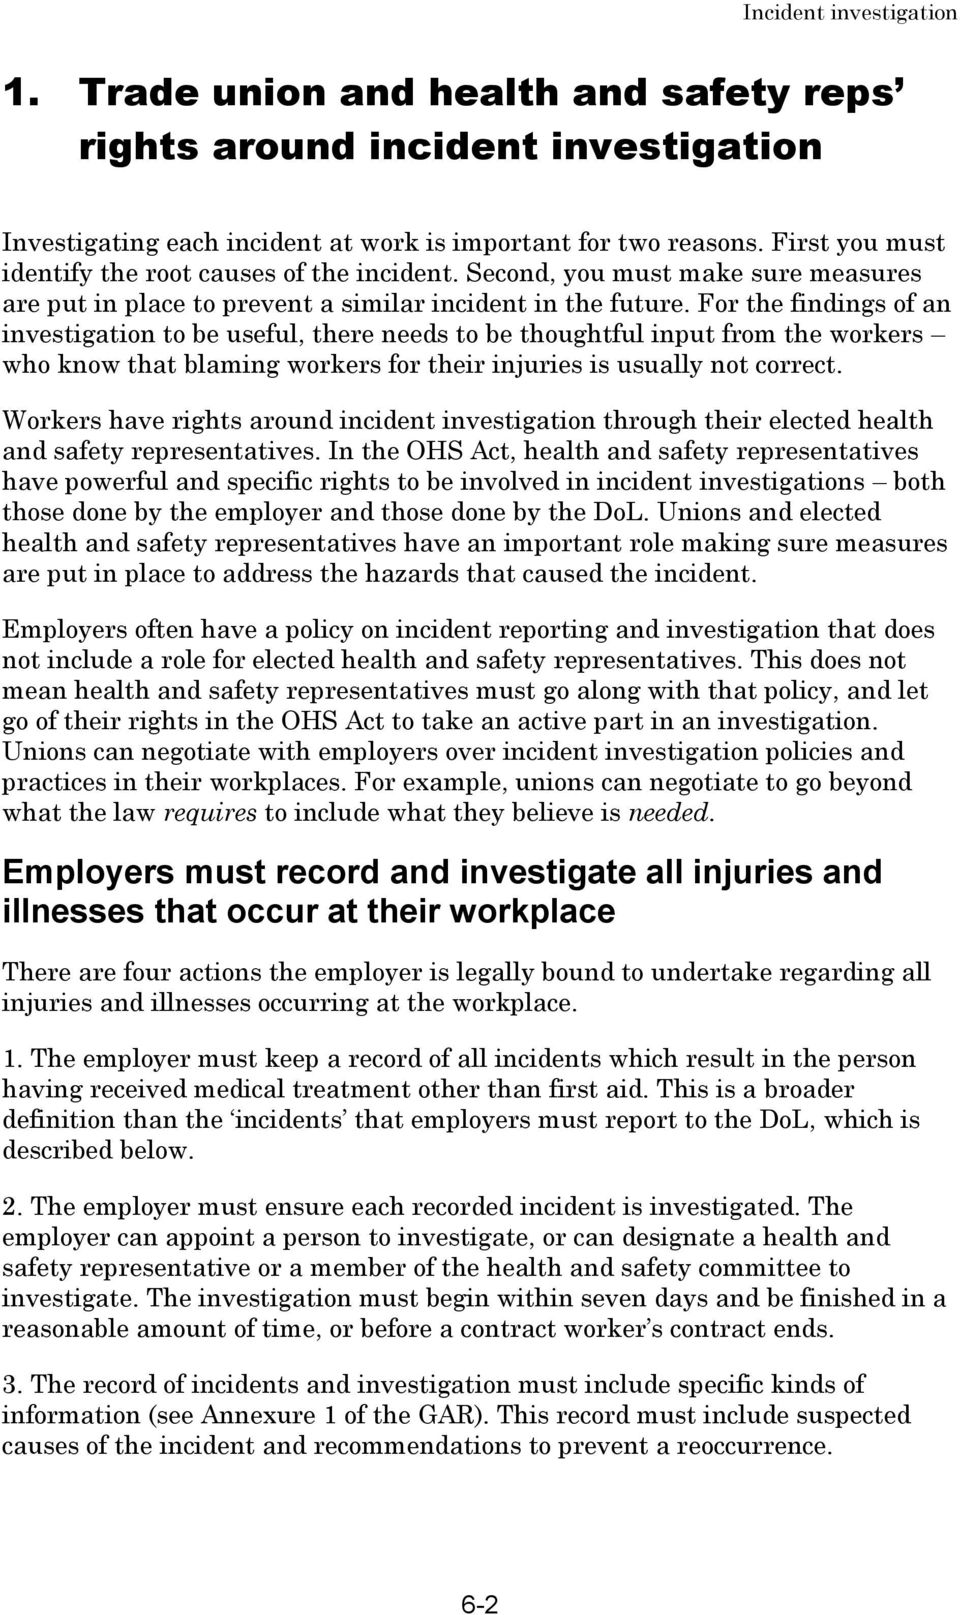 For the findings of an investigation to be useful, there needs to be thoughtful input from the workers who know that blaming workers for their injuries is usually not correct.